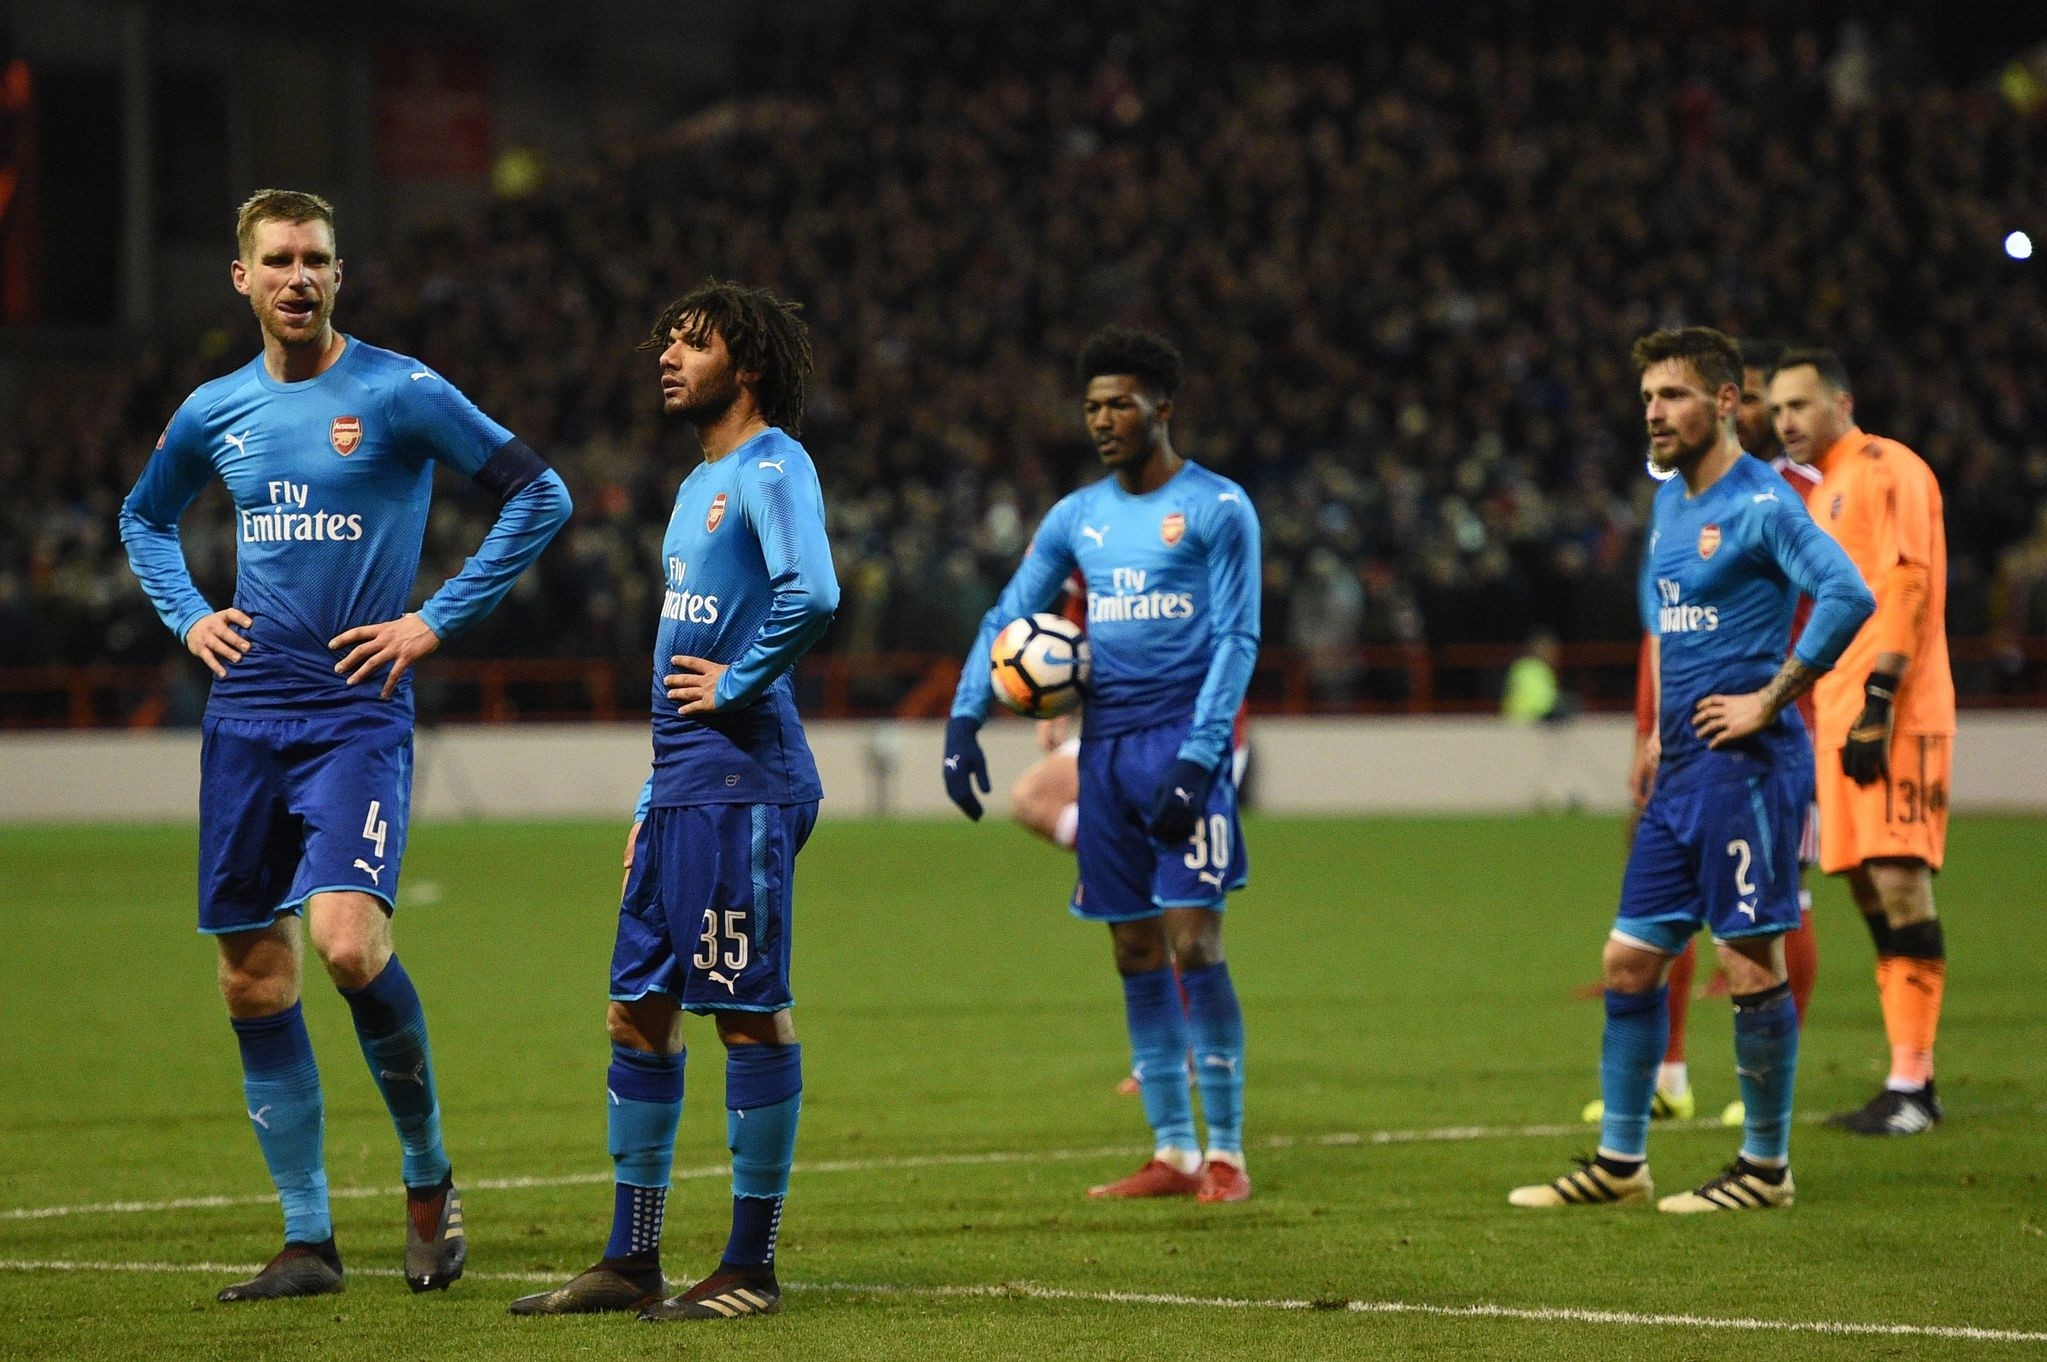 Arsenal players react to the awarding of the second penalty to Nottingham Forest during the English FA Cup third round football match between Nottingham Forest and Arsenal at The City Ground in Nottingham, central England, on January 7, 2018. (AFP Ph